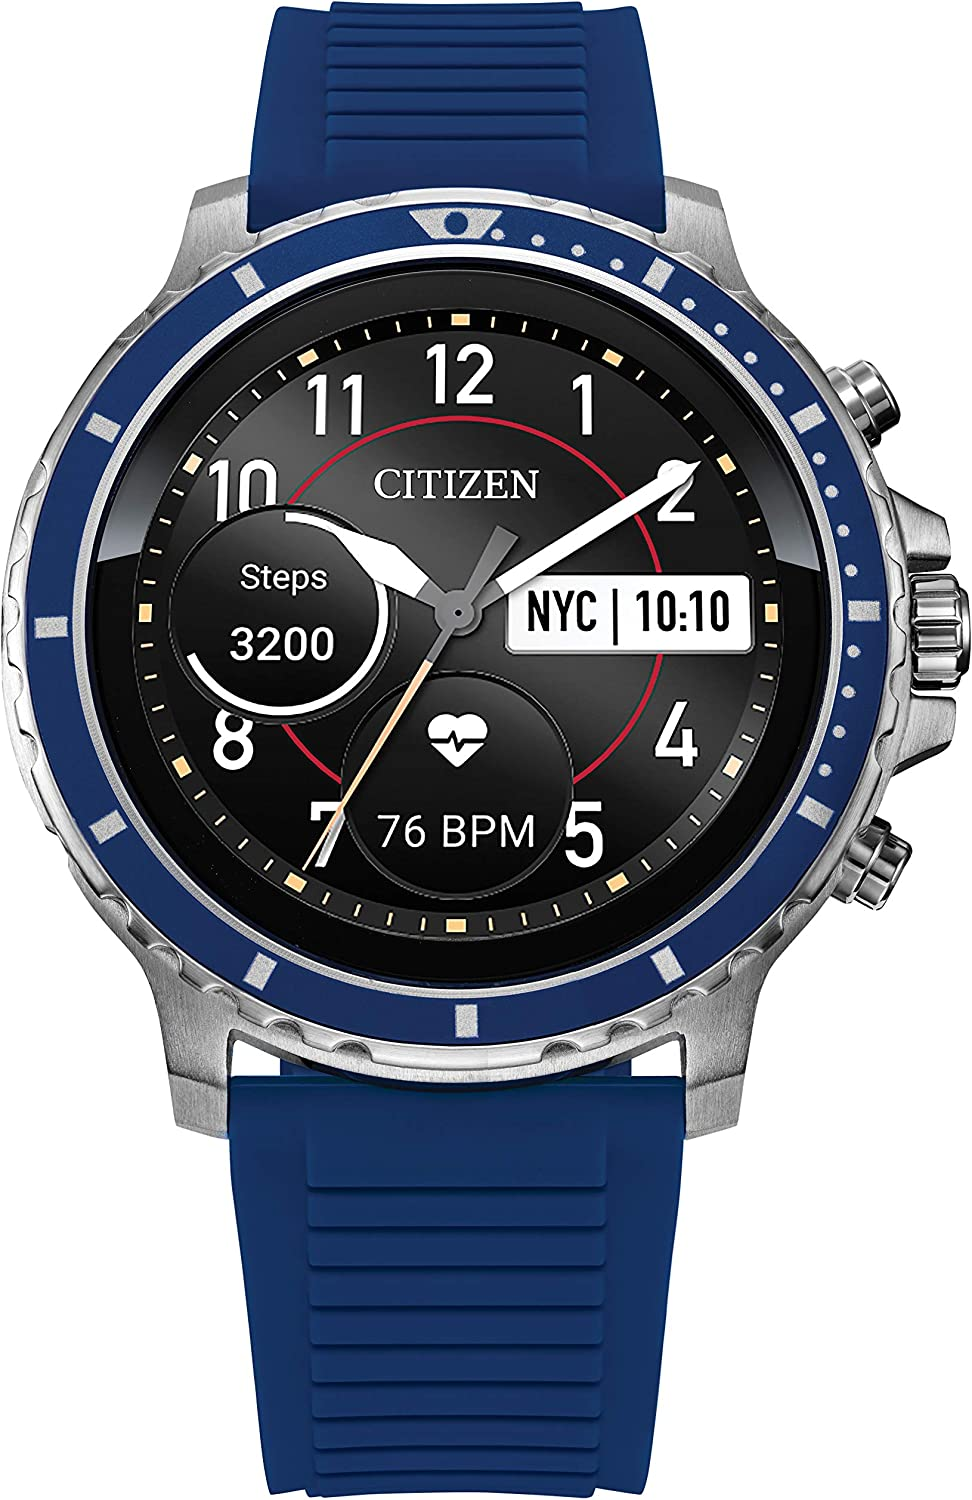 Citizen CZ Smart Stainless Steel Smartwatch Touchscreen, Heartrate, GPS, Speaker, Bluetooth, Notifications, iPhone and Android Compatible, Powered by Google Wear OS